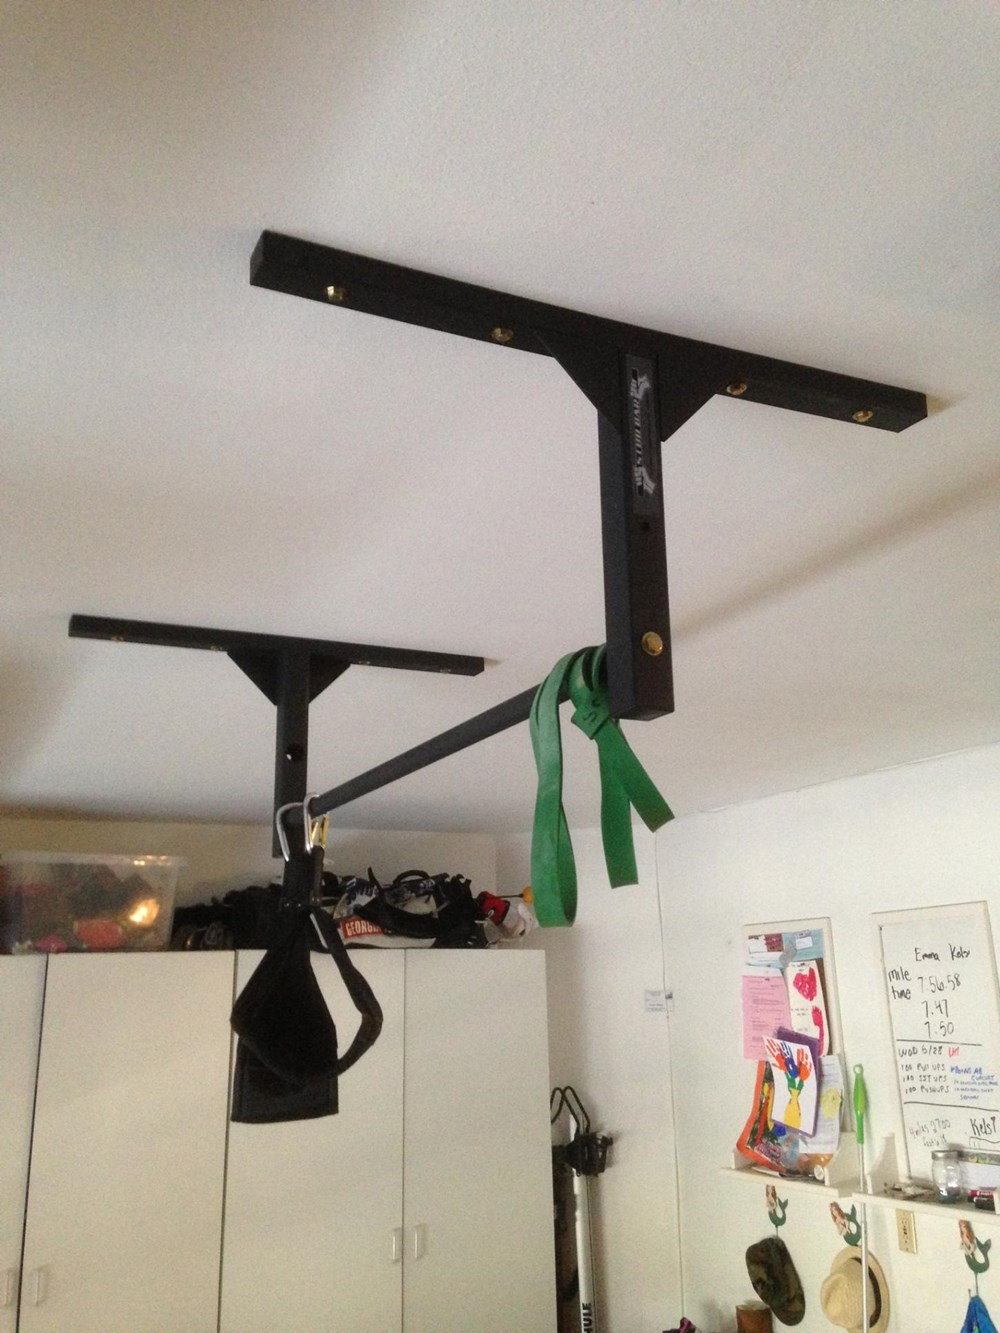 Joist Mounted Pull Up Bar door ... & Should I get a doorway pull up bar or a ceiling mounted pull up ... Pezcame.Com